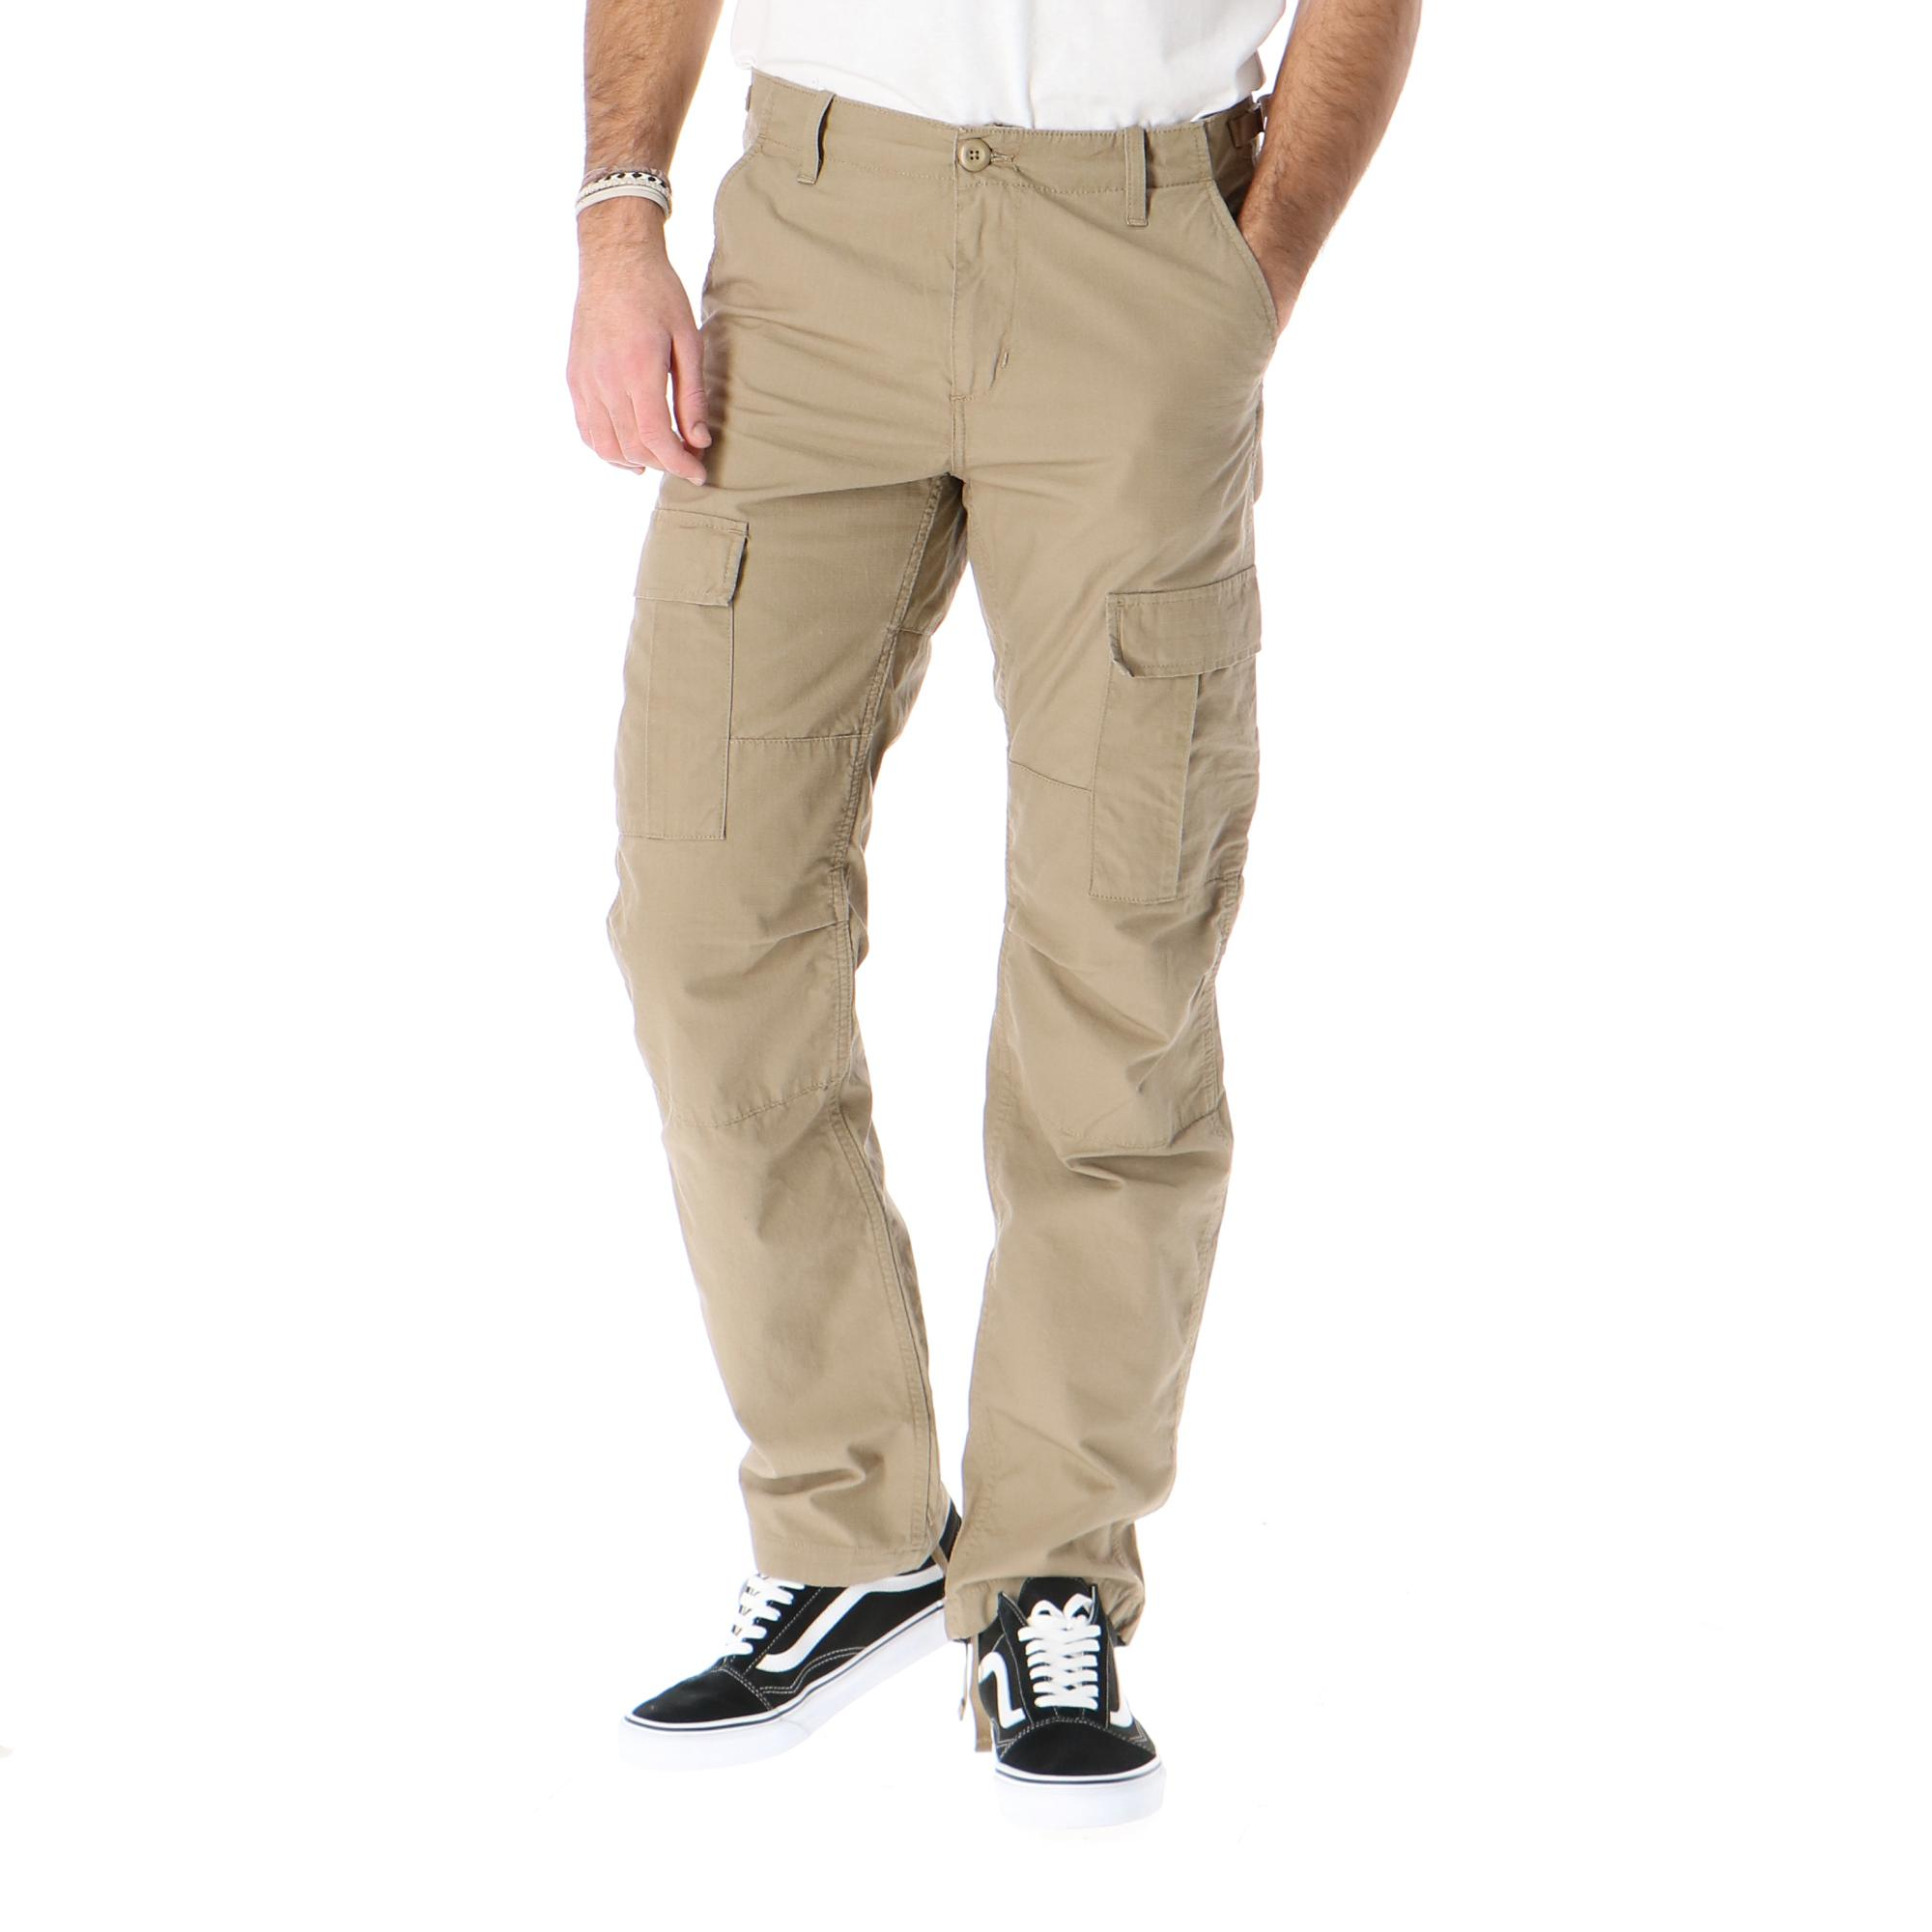 Carhartt Aviation Pant LEATHER RINSED